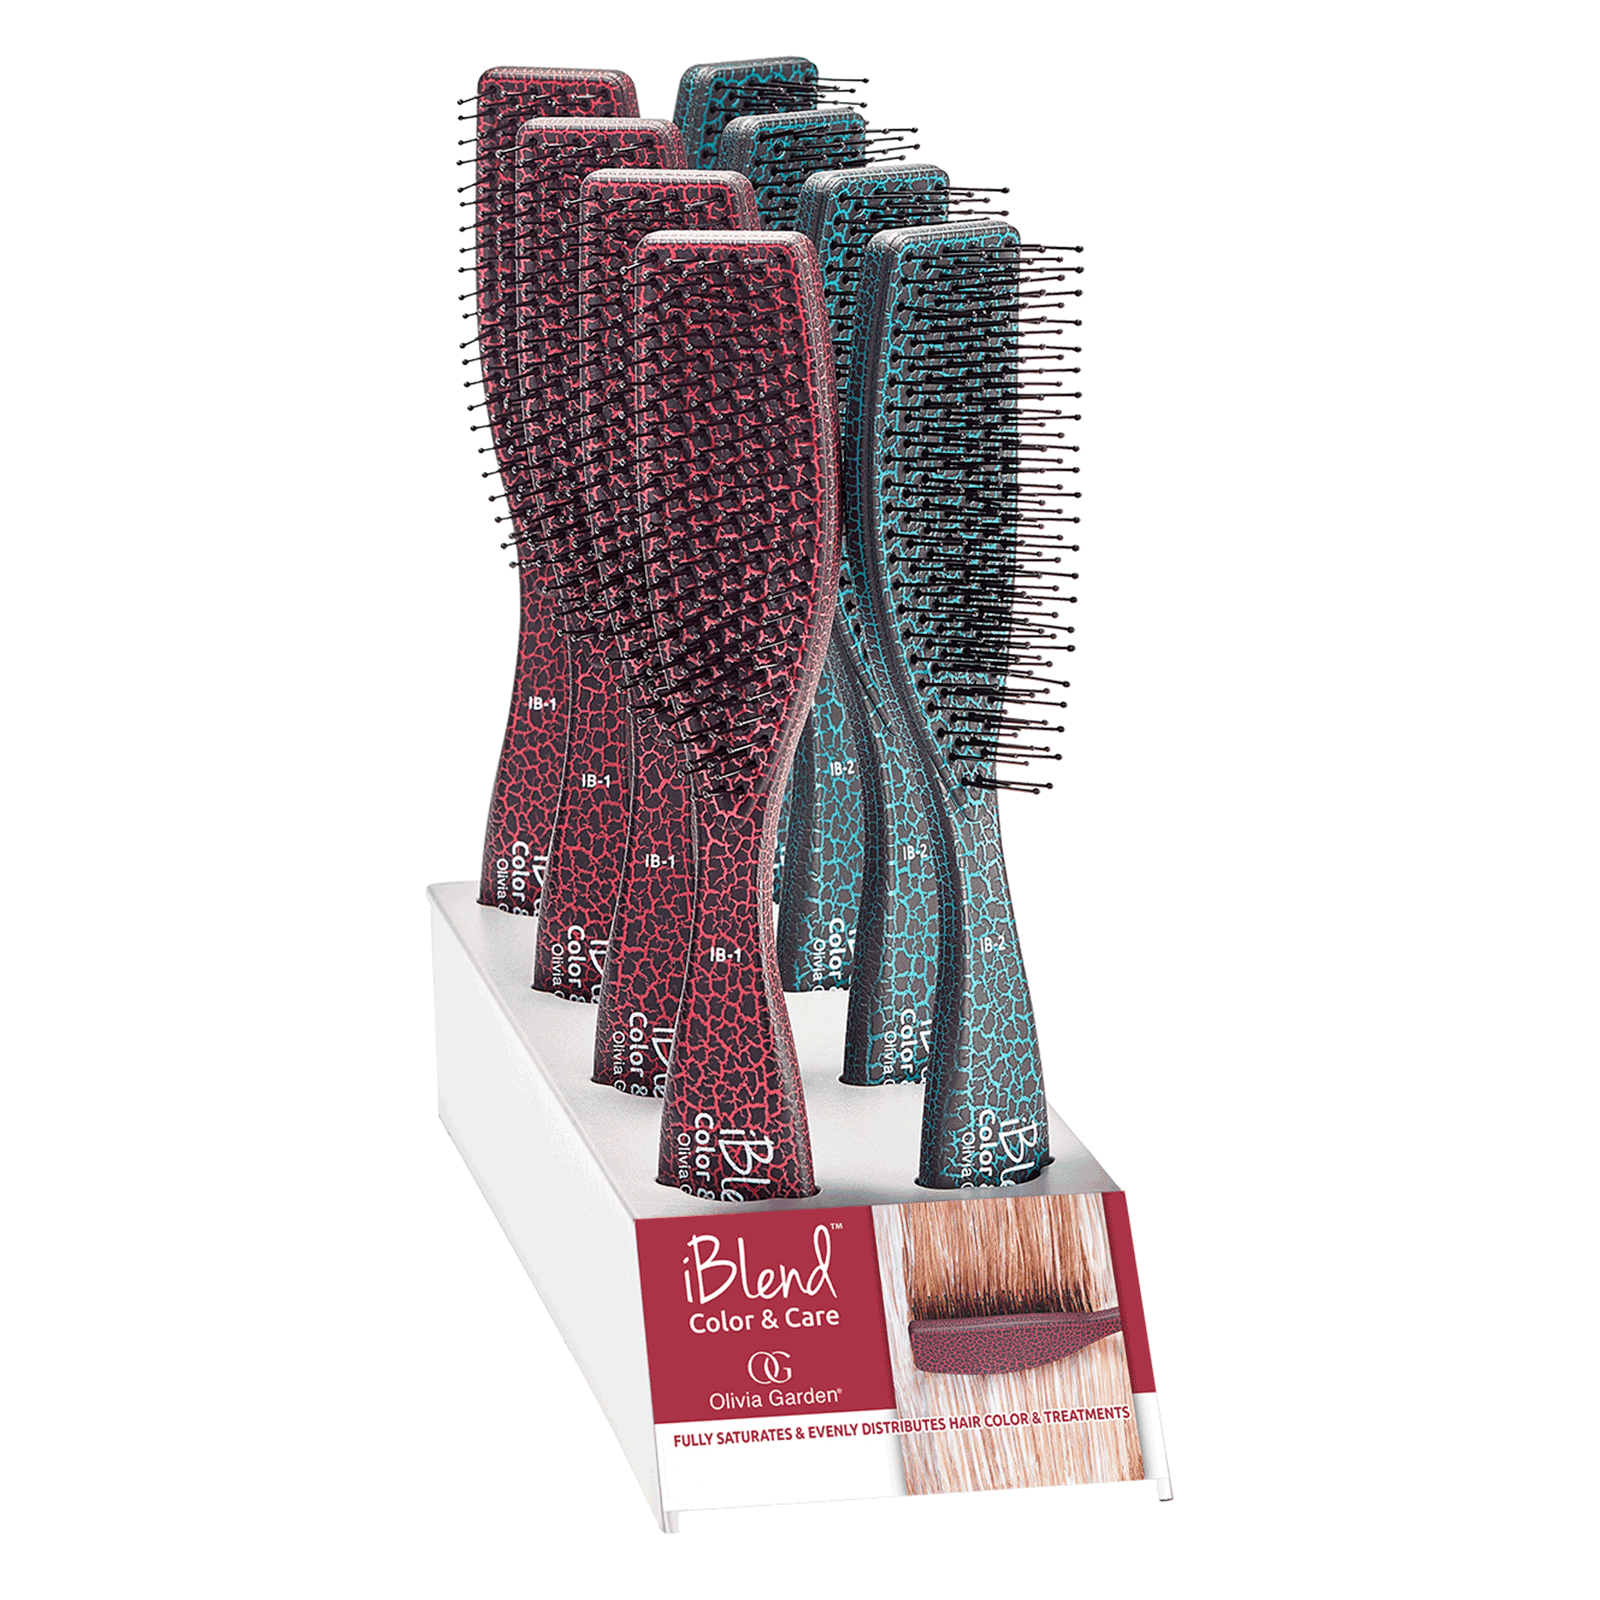 iBlend Color & Care Brush - 8 piece Display